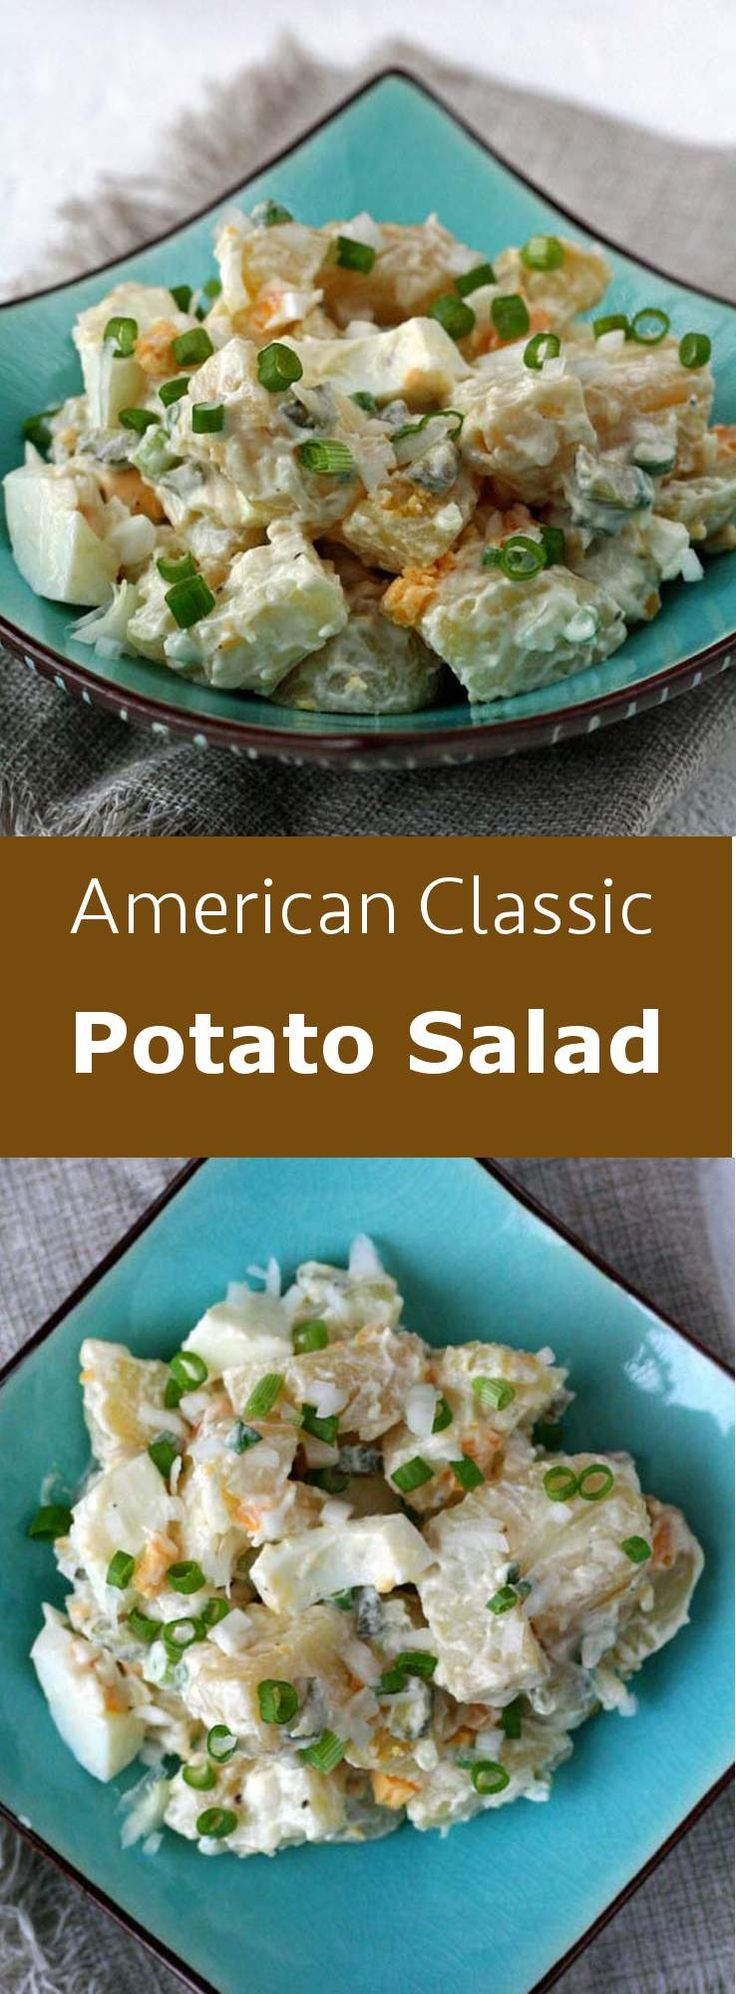 Best American Classic Recipes Images On Pinterest - United states of america cuisine